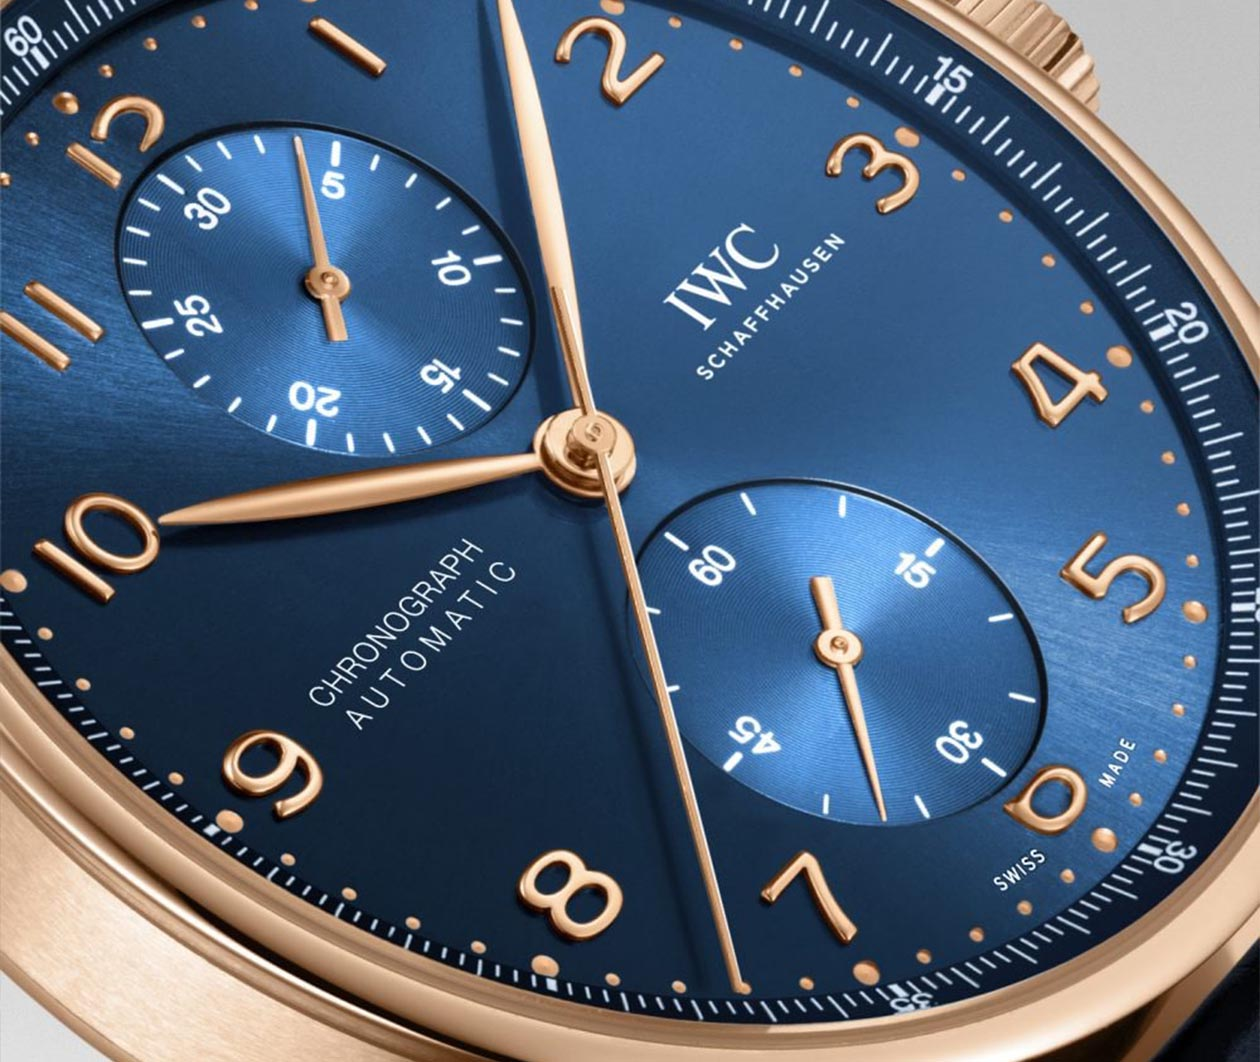 IWC Portugieser ChronographBoutiqueEdition IW371614 Carousel 4 FINAL